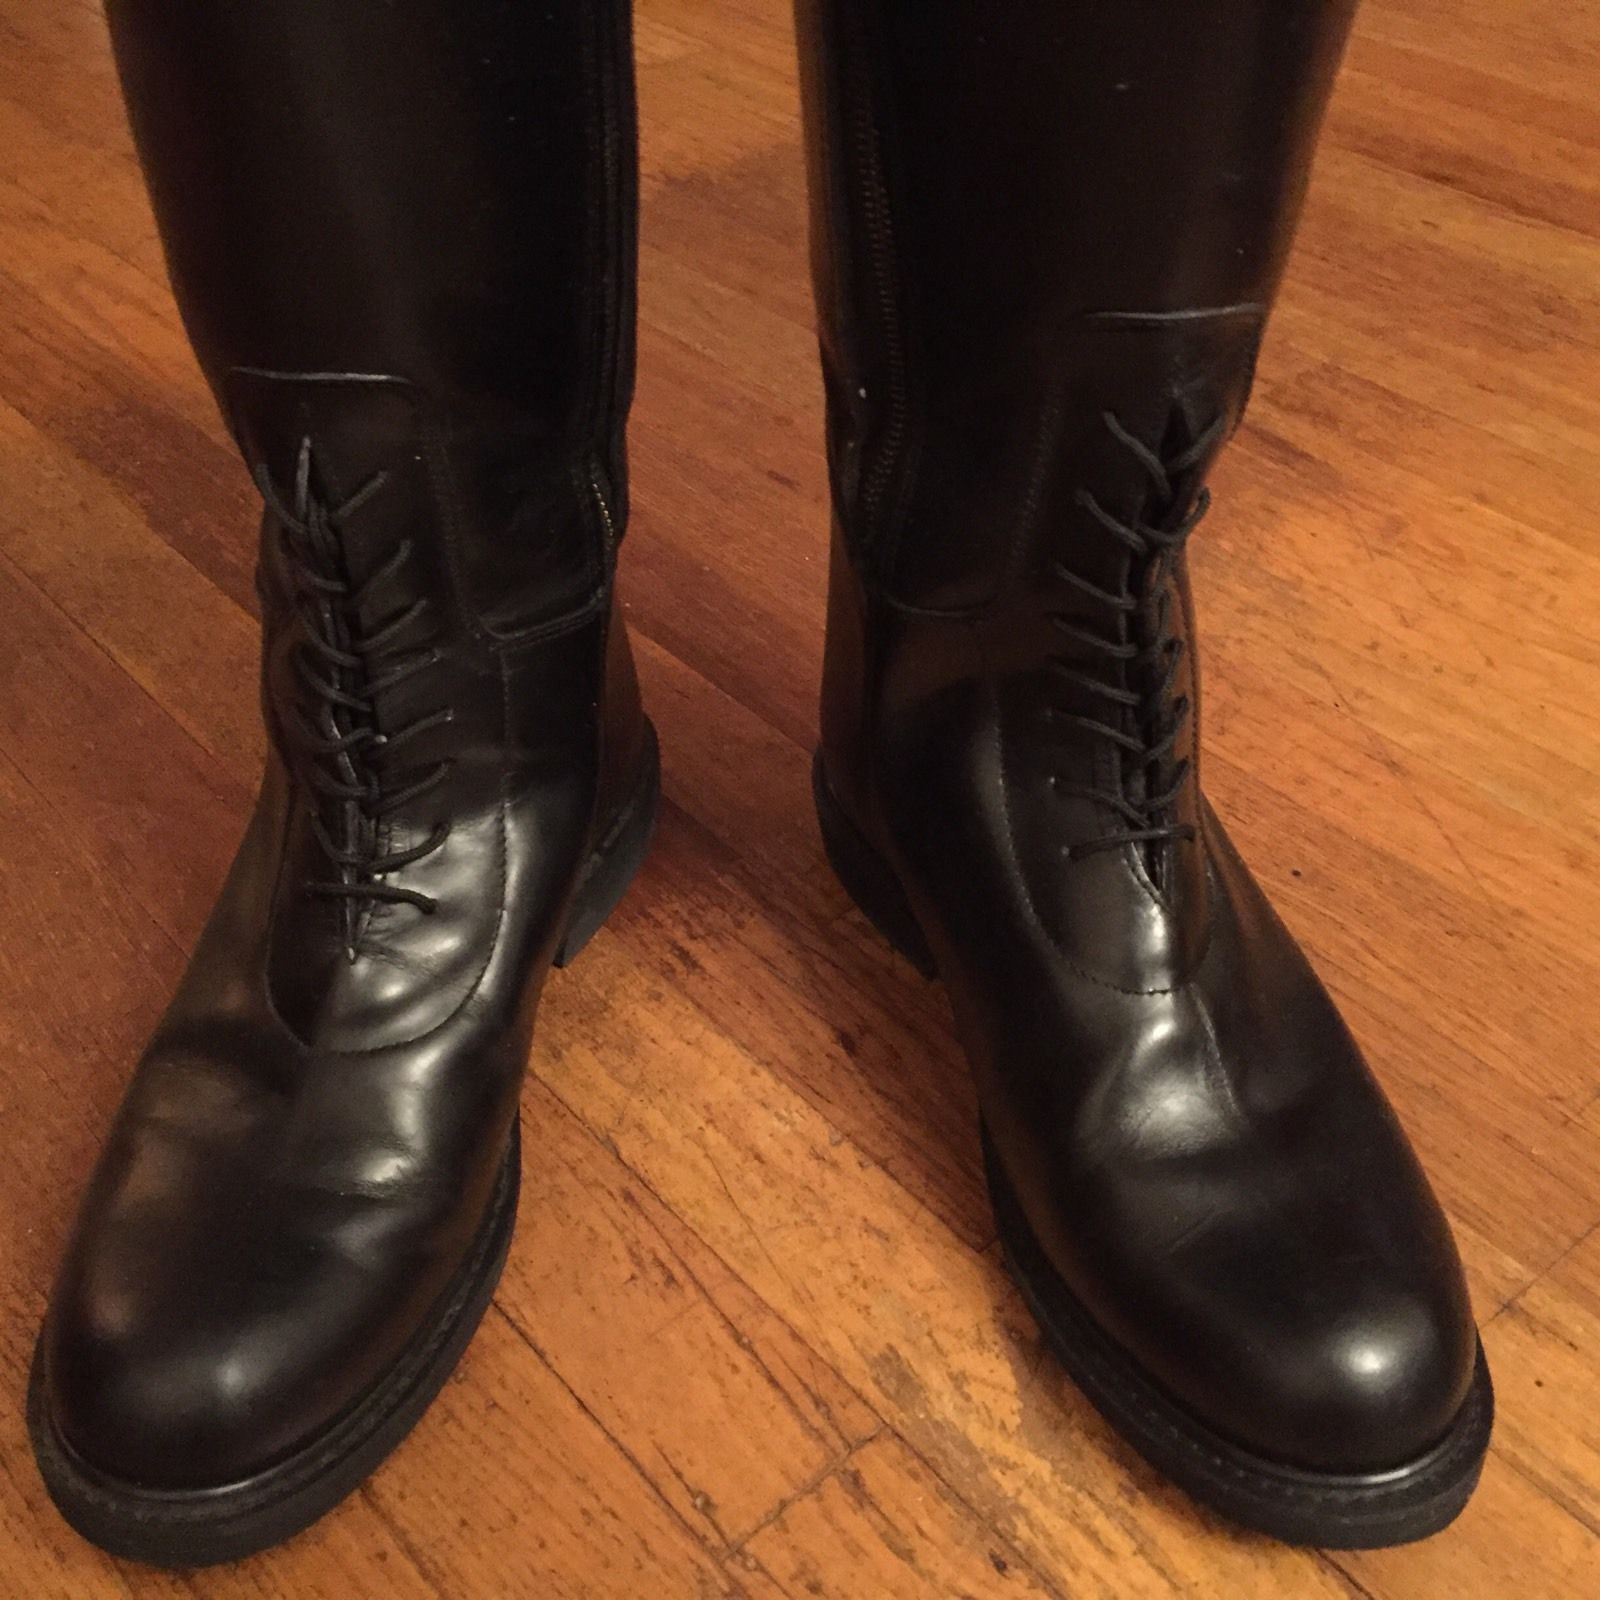 nib brinkerhoff police motorcycle chp leather buckle riding boots